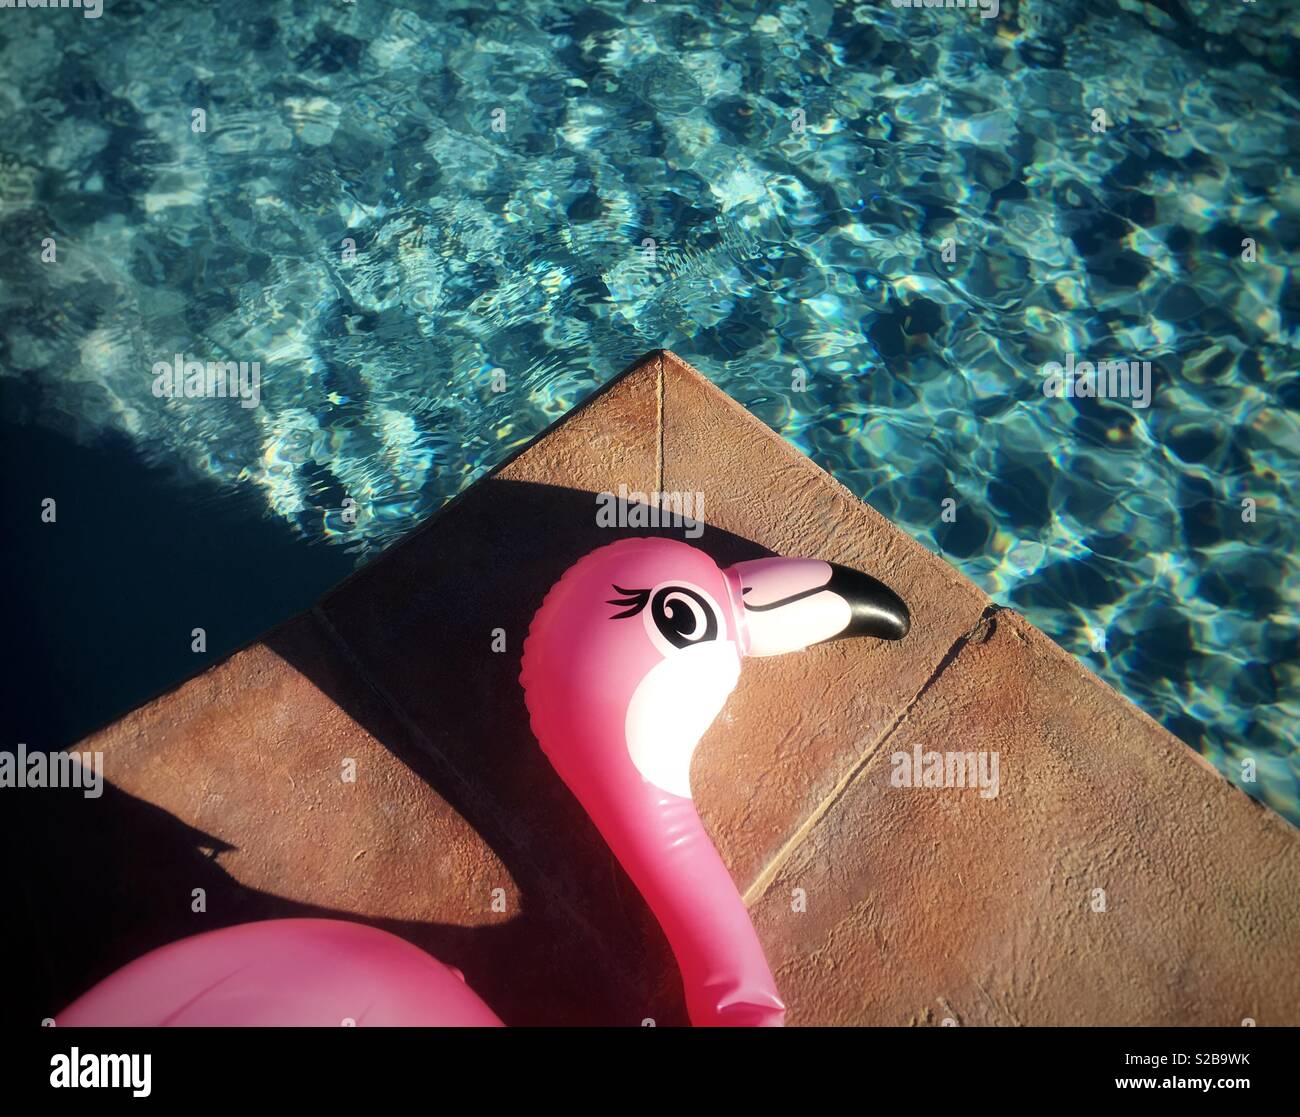 Inflatable pink flamingo sunbathing at side of the pool - Stock Image